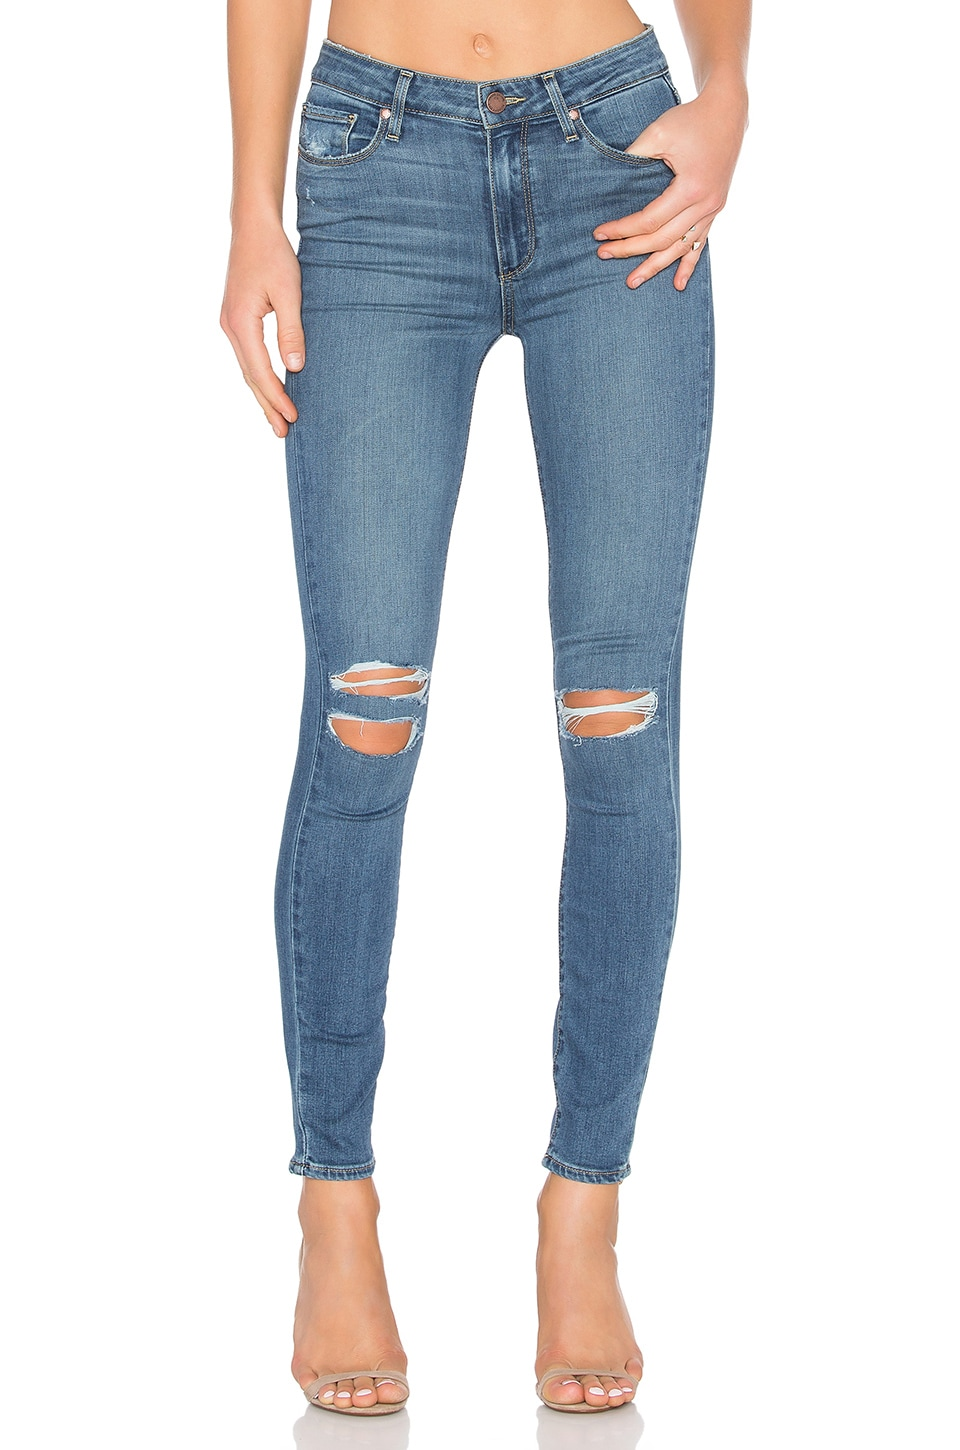 PAIGE Hoxton Ankle Skinny in Jayla Destructed